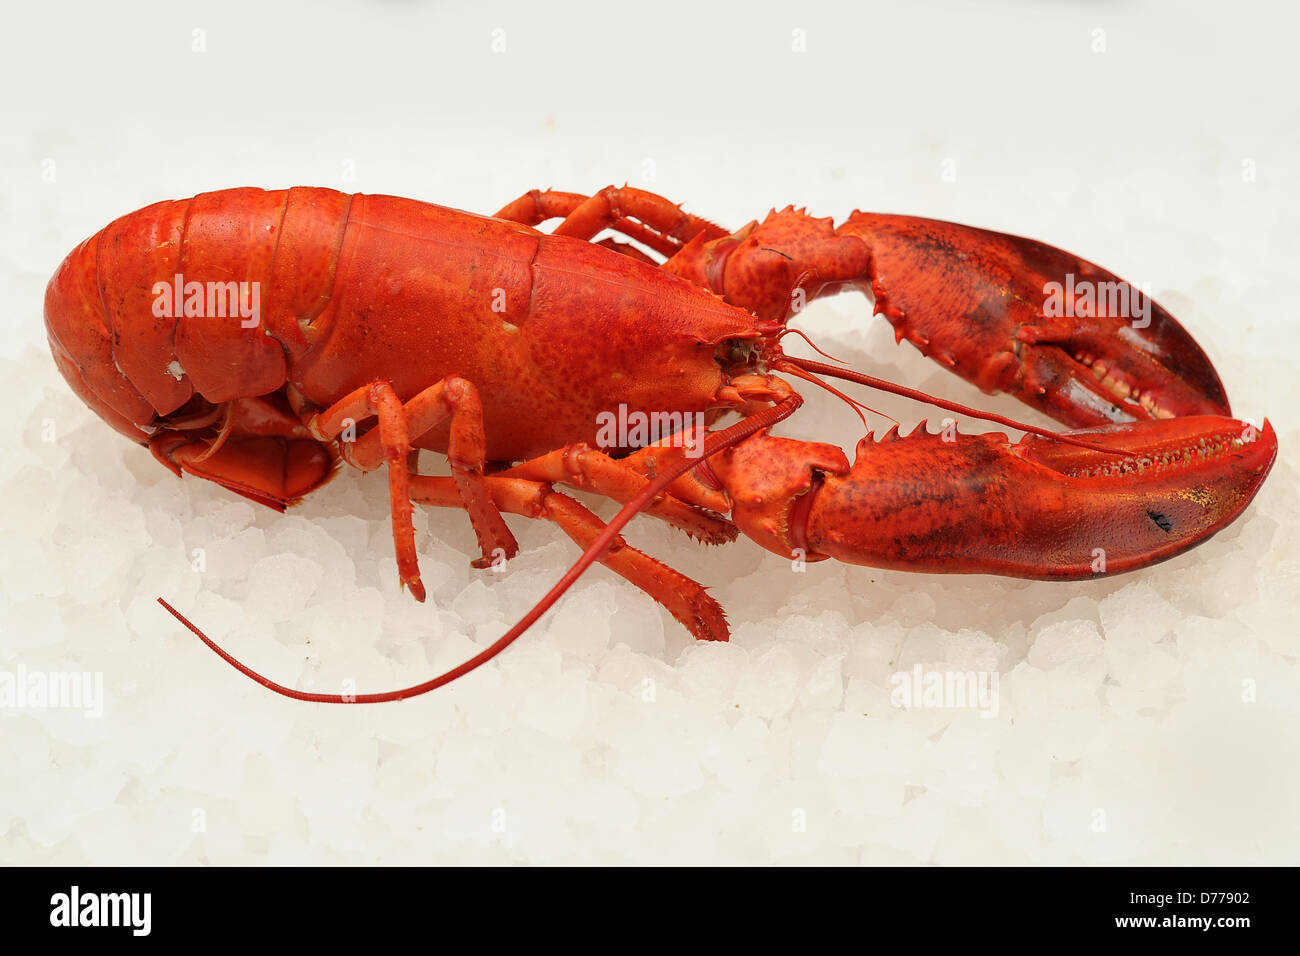 a red lobster - Stock Image